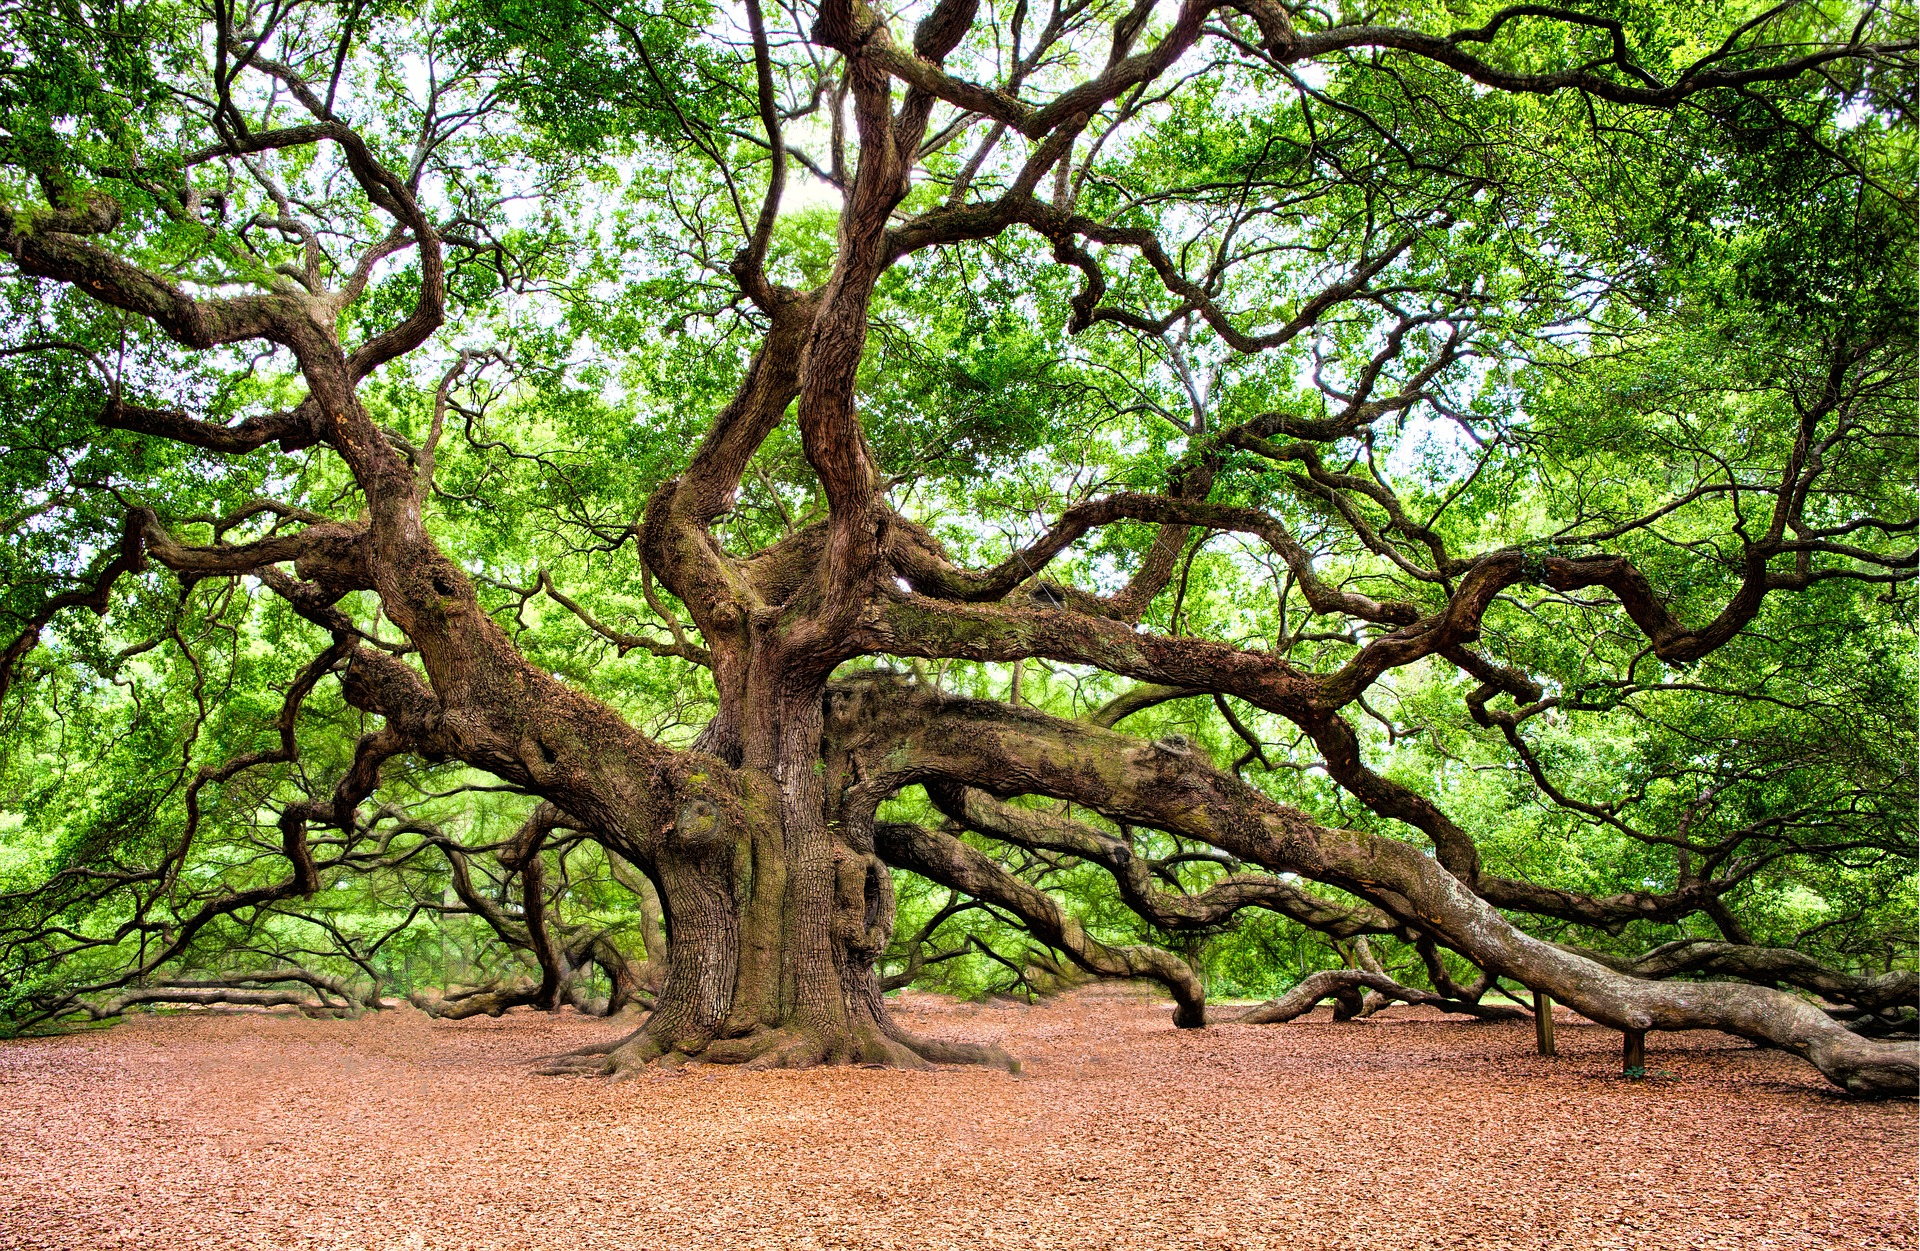 Large oak tree with sophisticated internal structure including cellulosic nano fibers